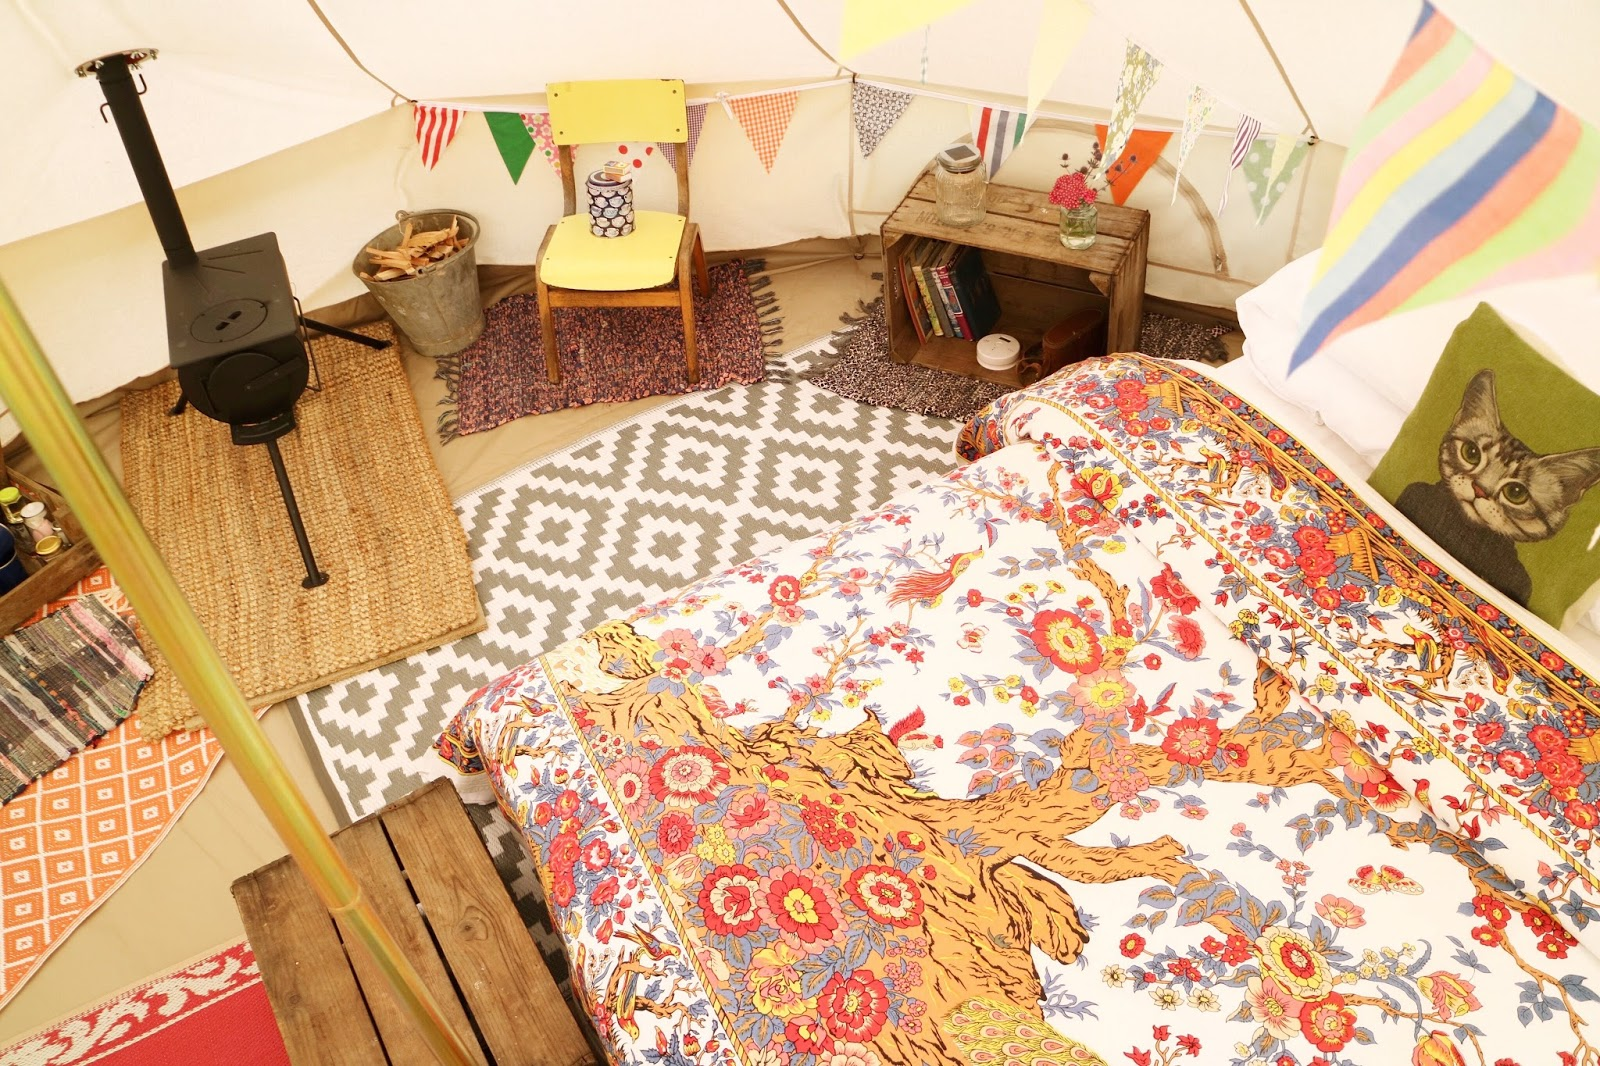 If youu0027ve ever tuned into BBCu0027s Normal for Norfolk youu0027ll by pretty familiar with Wiveton Hall. Located in Cley Next the Sea and ran by the ever eccentric ... & the jessica life | UK lifestyle blog: amberu0027s bell tent camping at ...